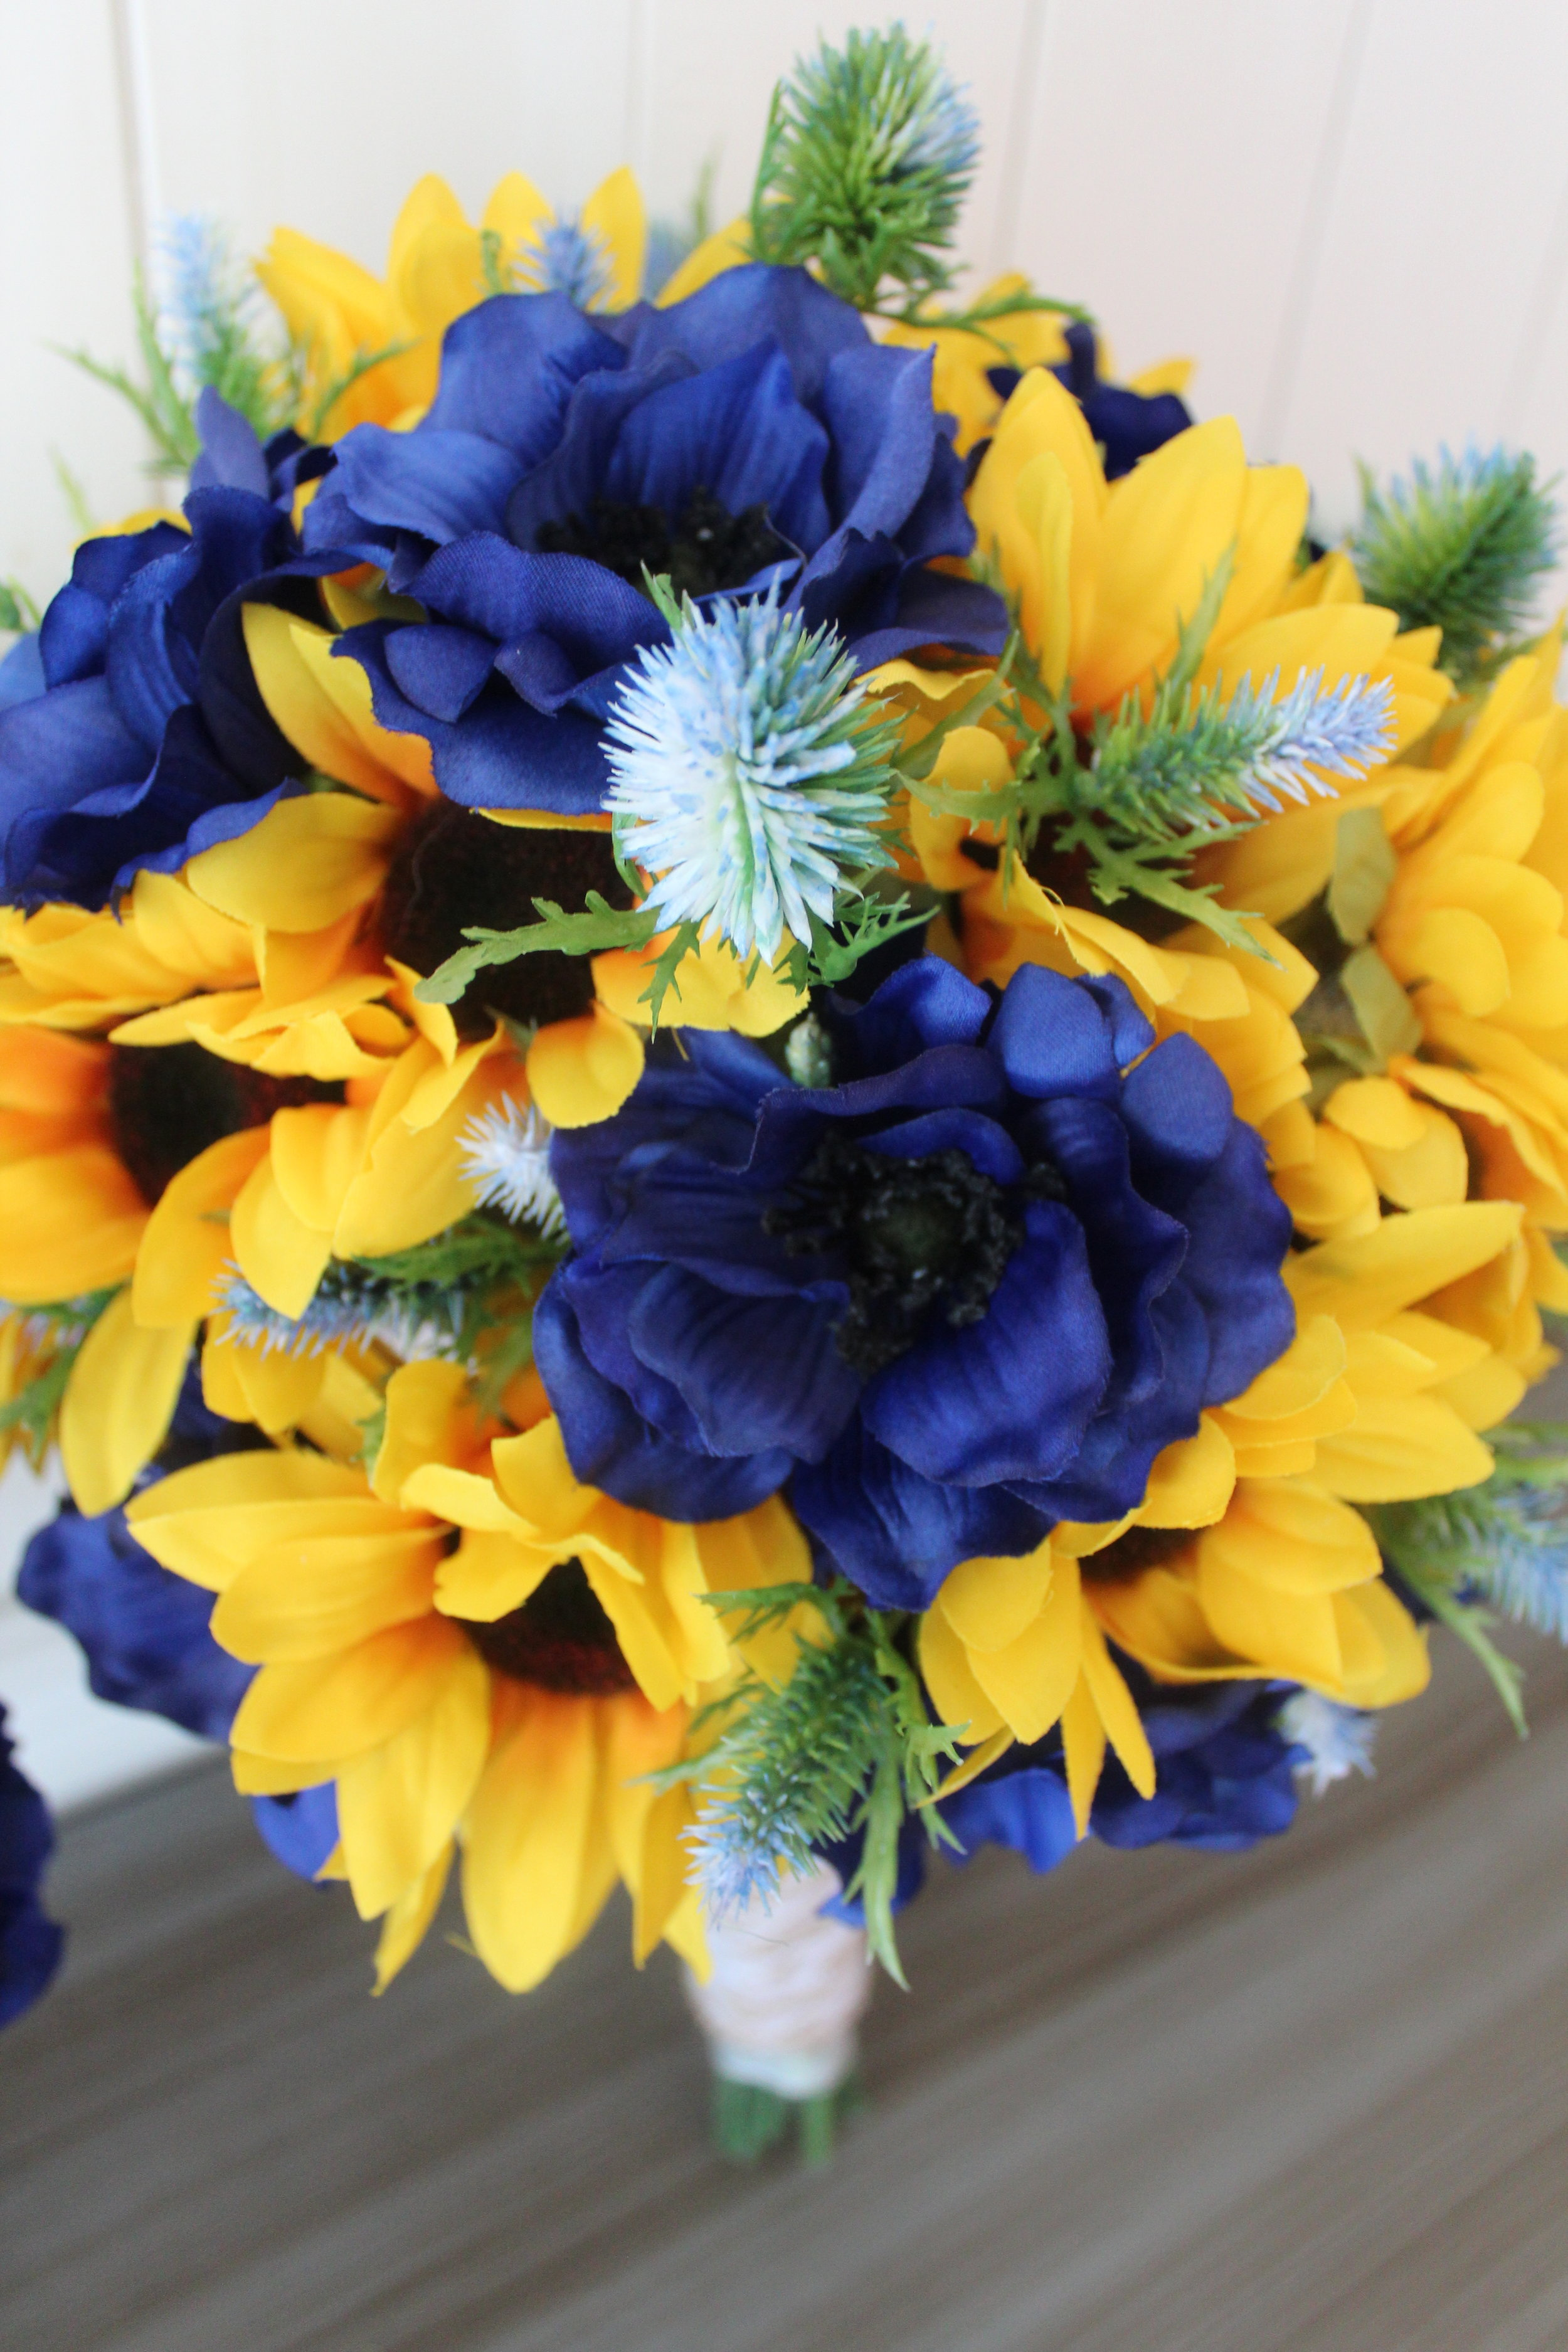 Bridal Bouquet with Sunflowers, Anemone and Thistle